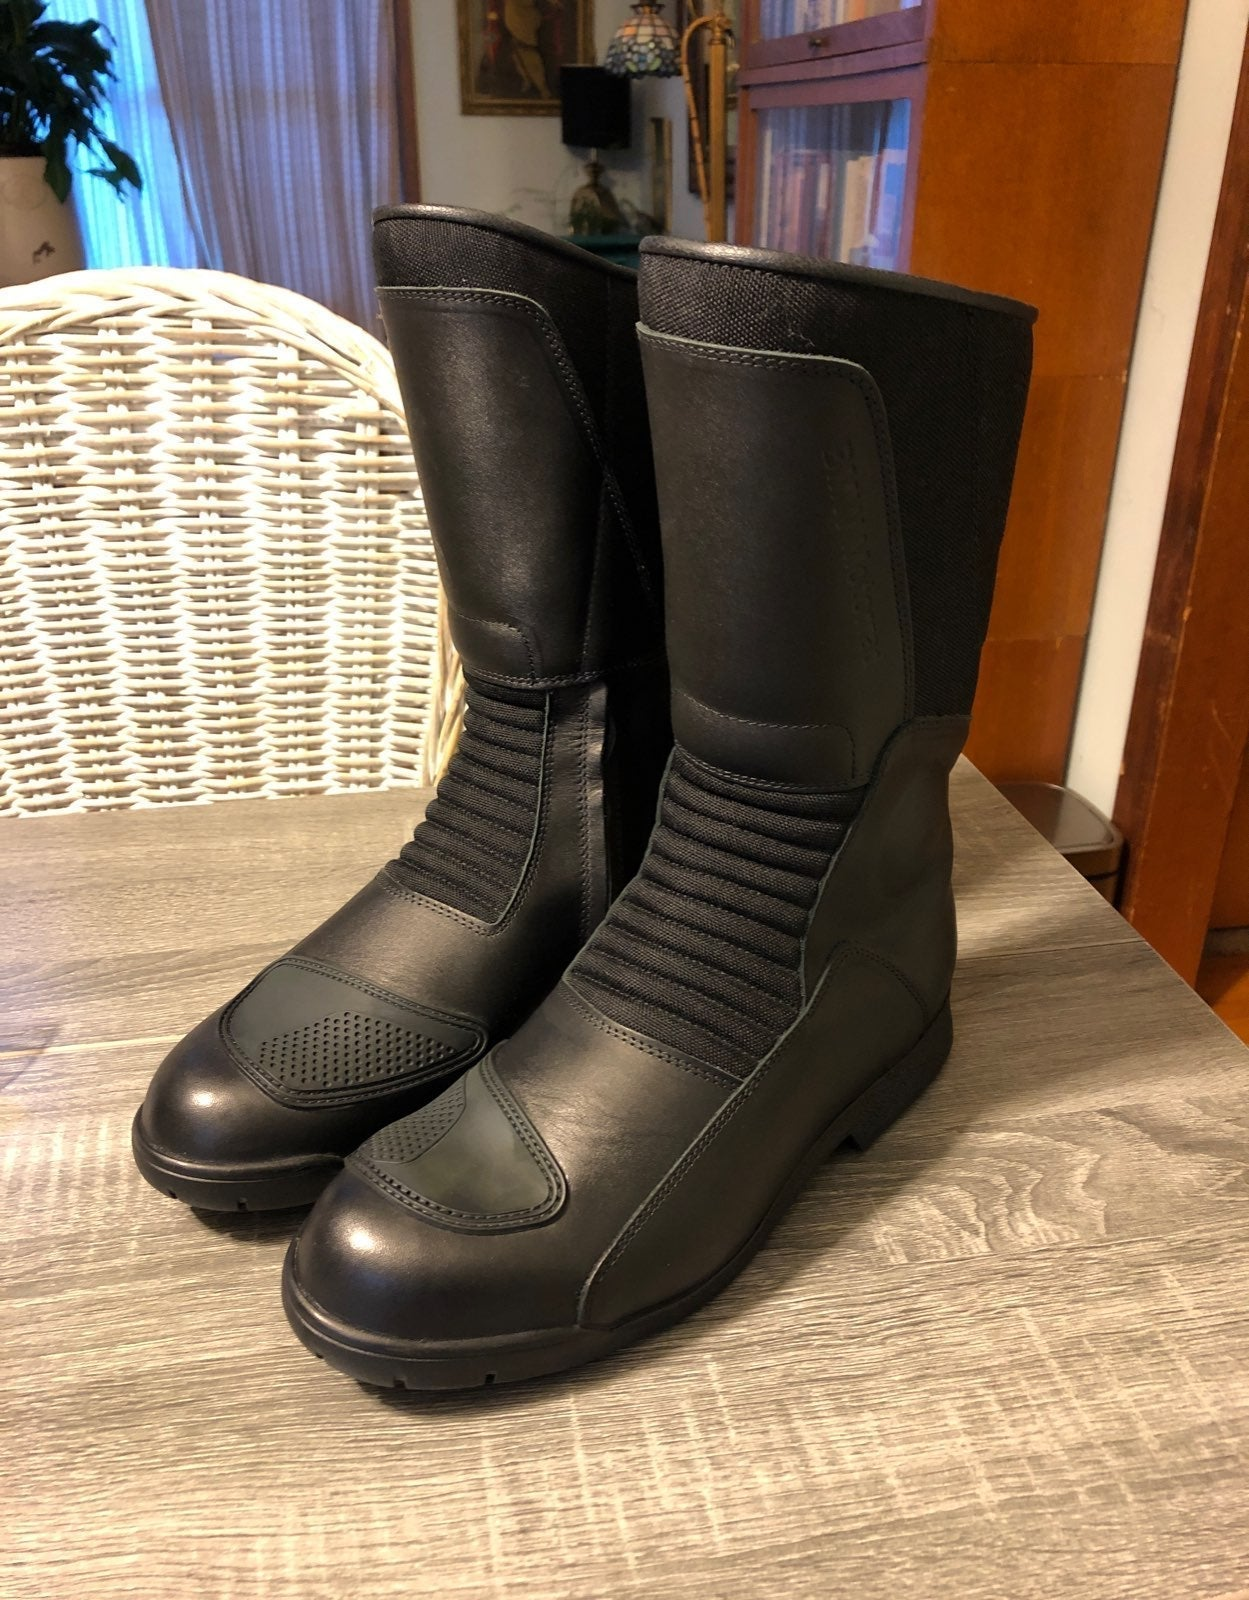 BMW leather Motorcycle boots 44/11